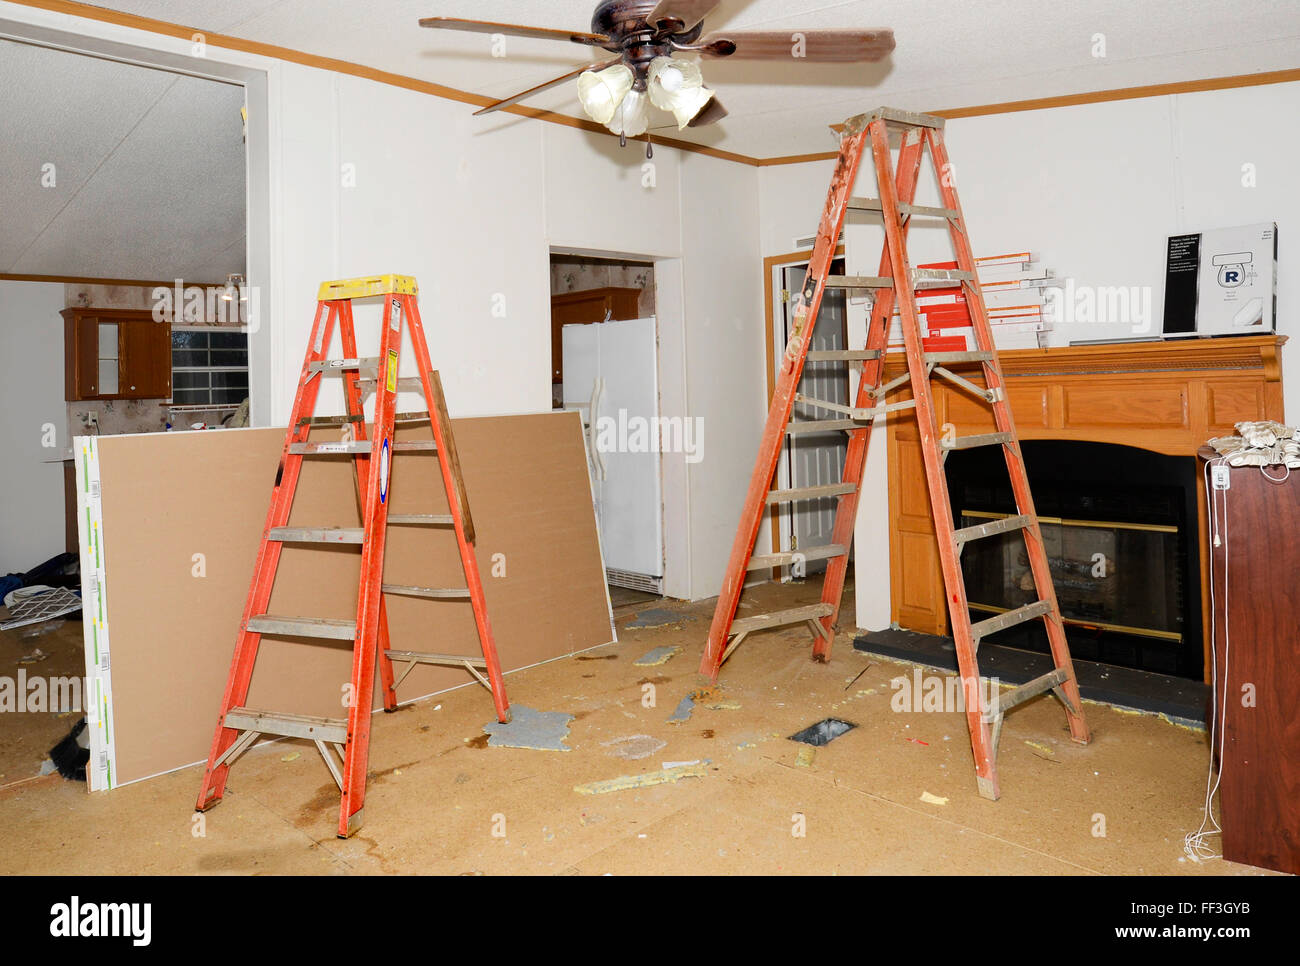 Complete Interior Stock Photos & Complete Interior Stock Images - Alamy